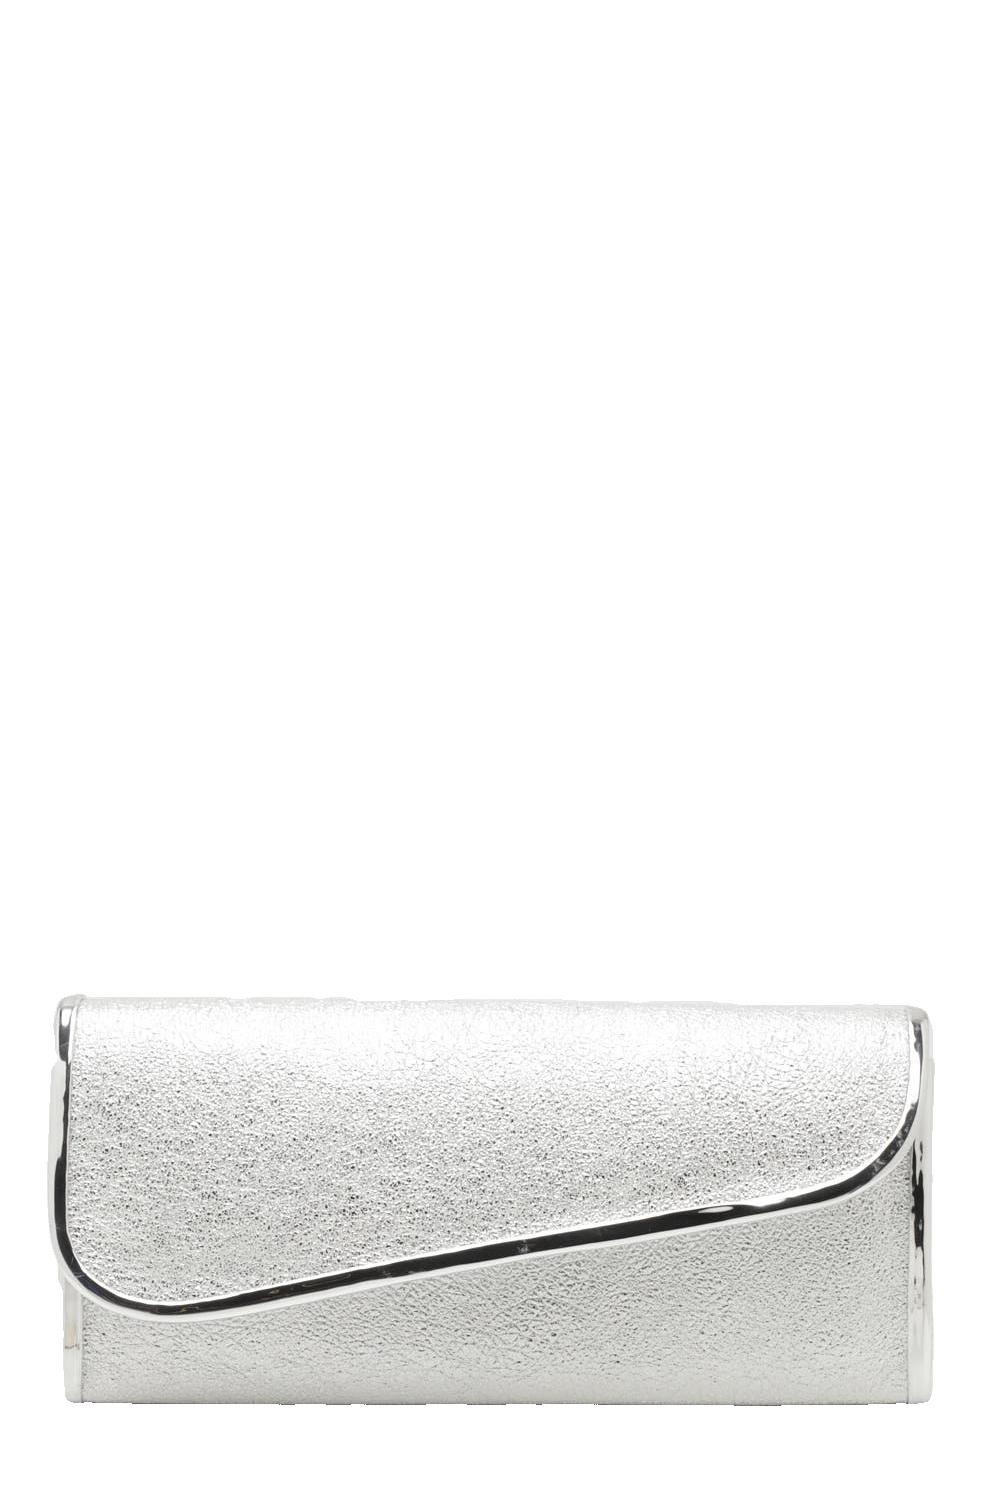 Piping Trim Metallic Asymetric Clutch